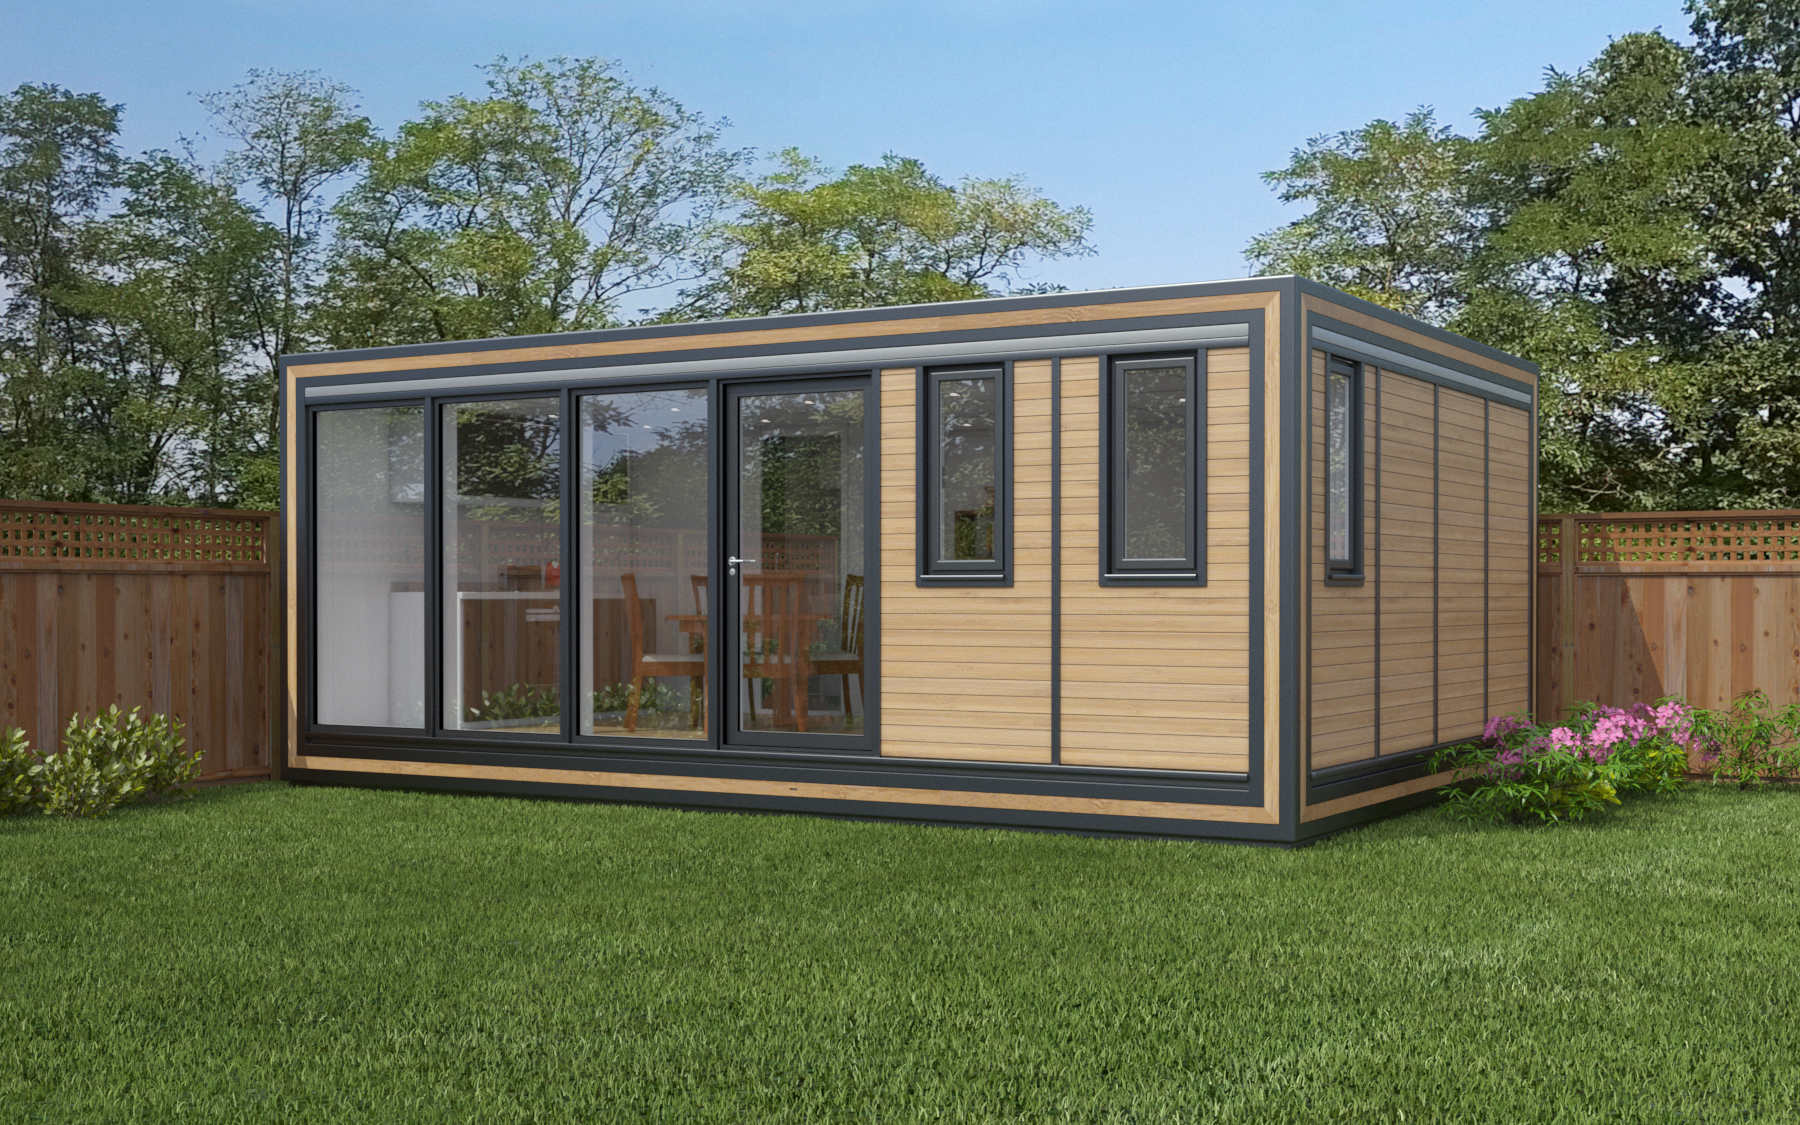 ZEDBOX 640  (6 x 4)  Internal Size: 6401 x 4259  External Size: 6871 x 4279  Bed Options: Single or Double  Kitchen Options: Micro or Premier  Wet Room Options: Yes  Portico: No  Price:  £36,000    Optional Extras    Request Zedbox Catalogue